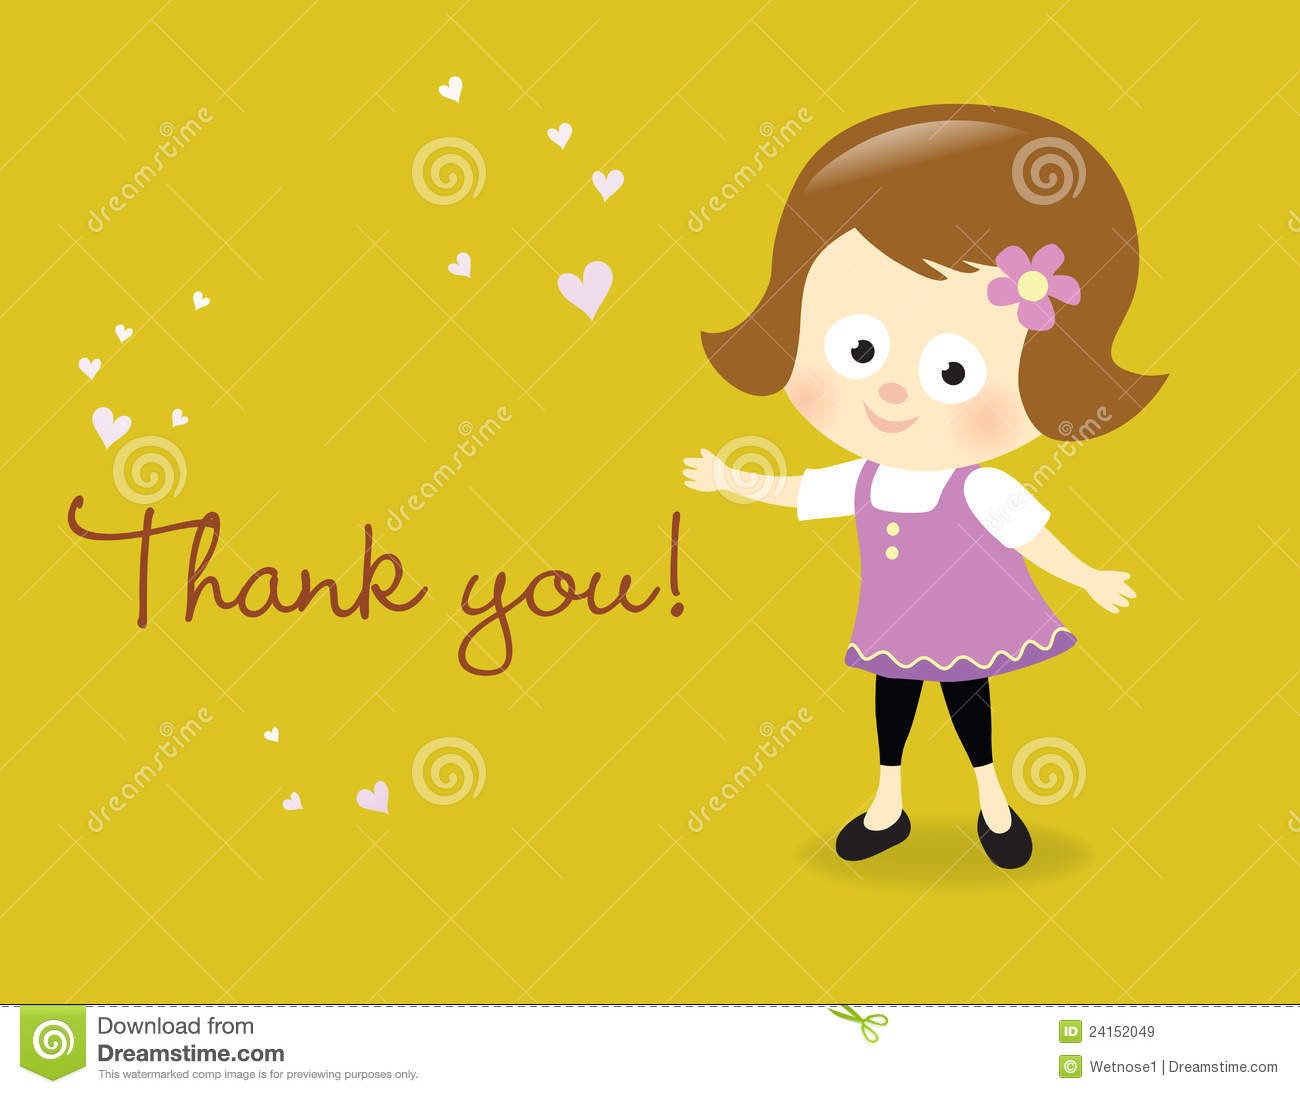 Thank You Card Royalty Free Stock Images - Image: 24152049